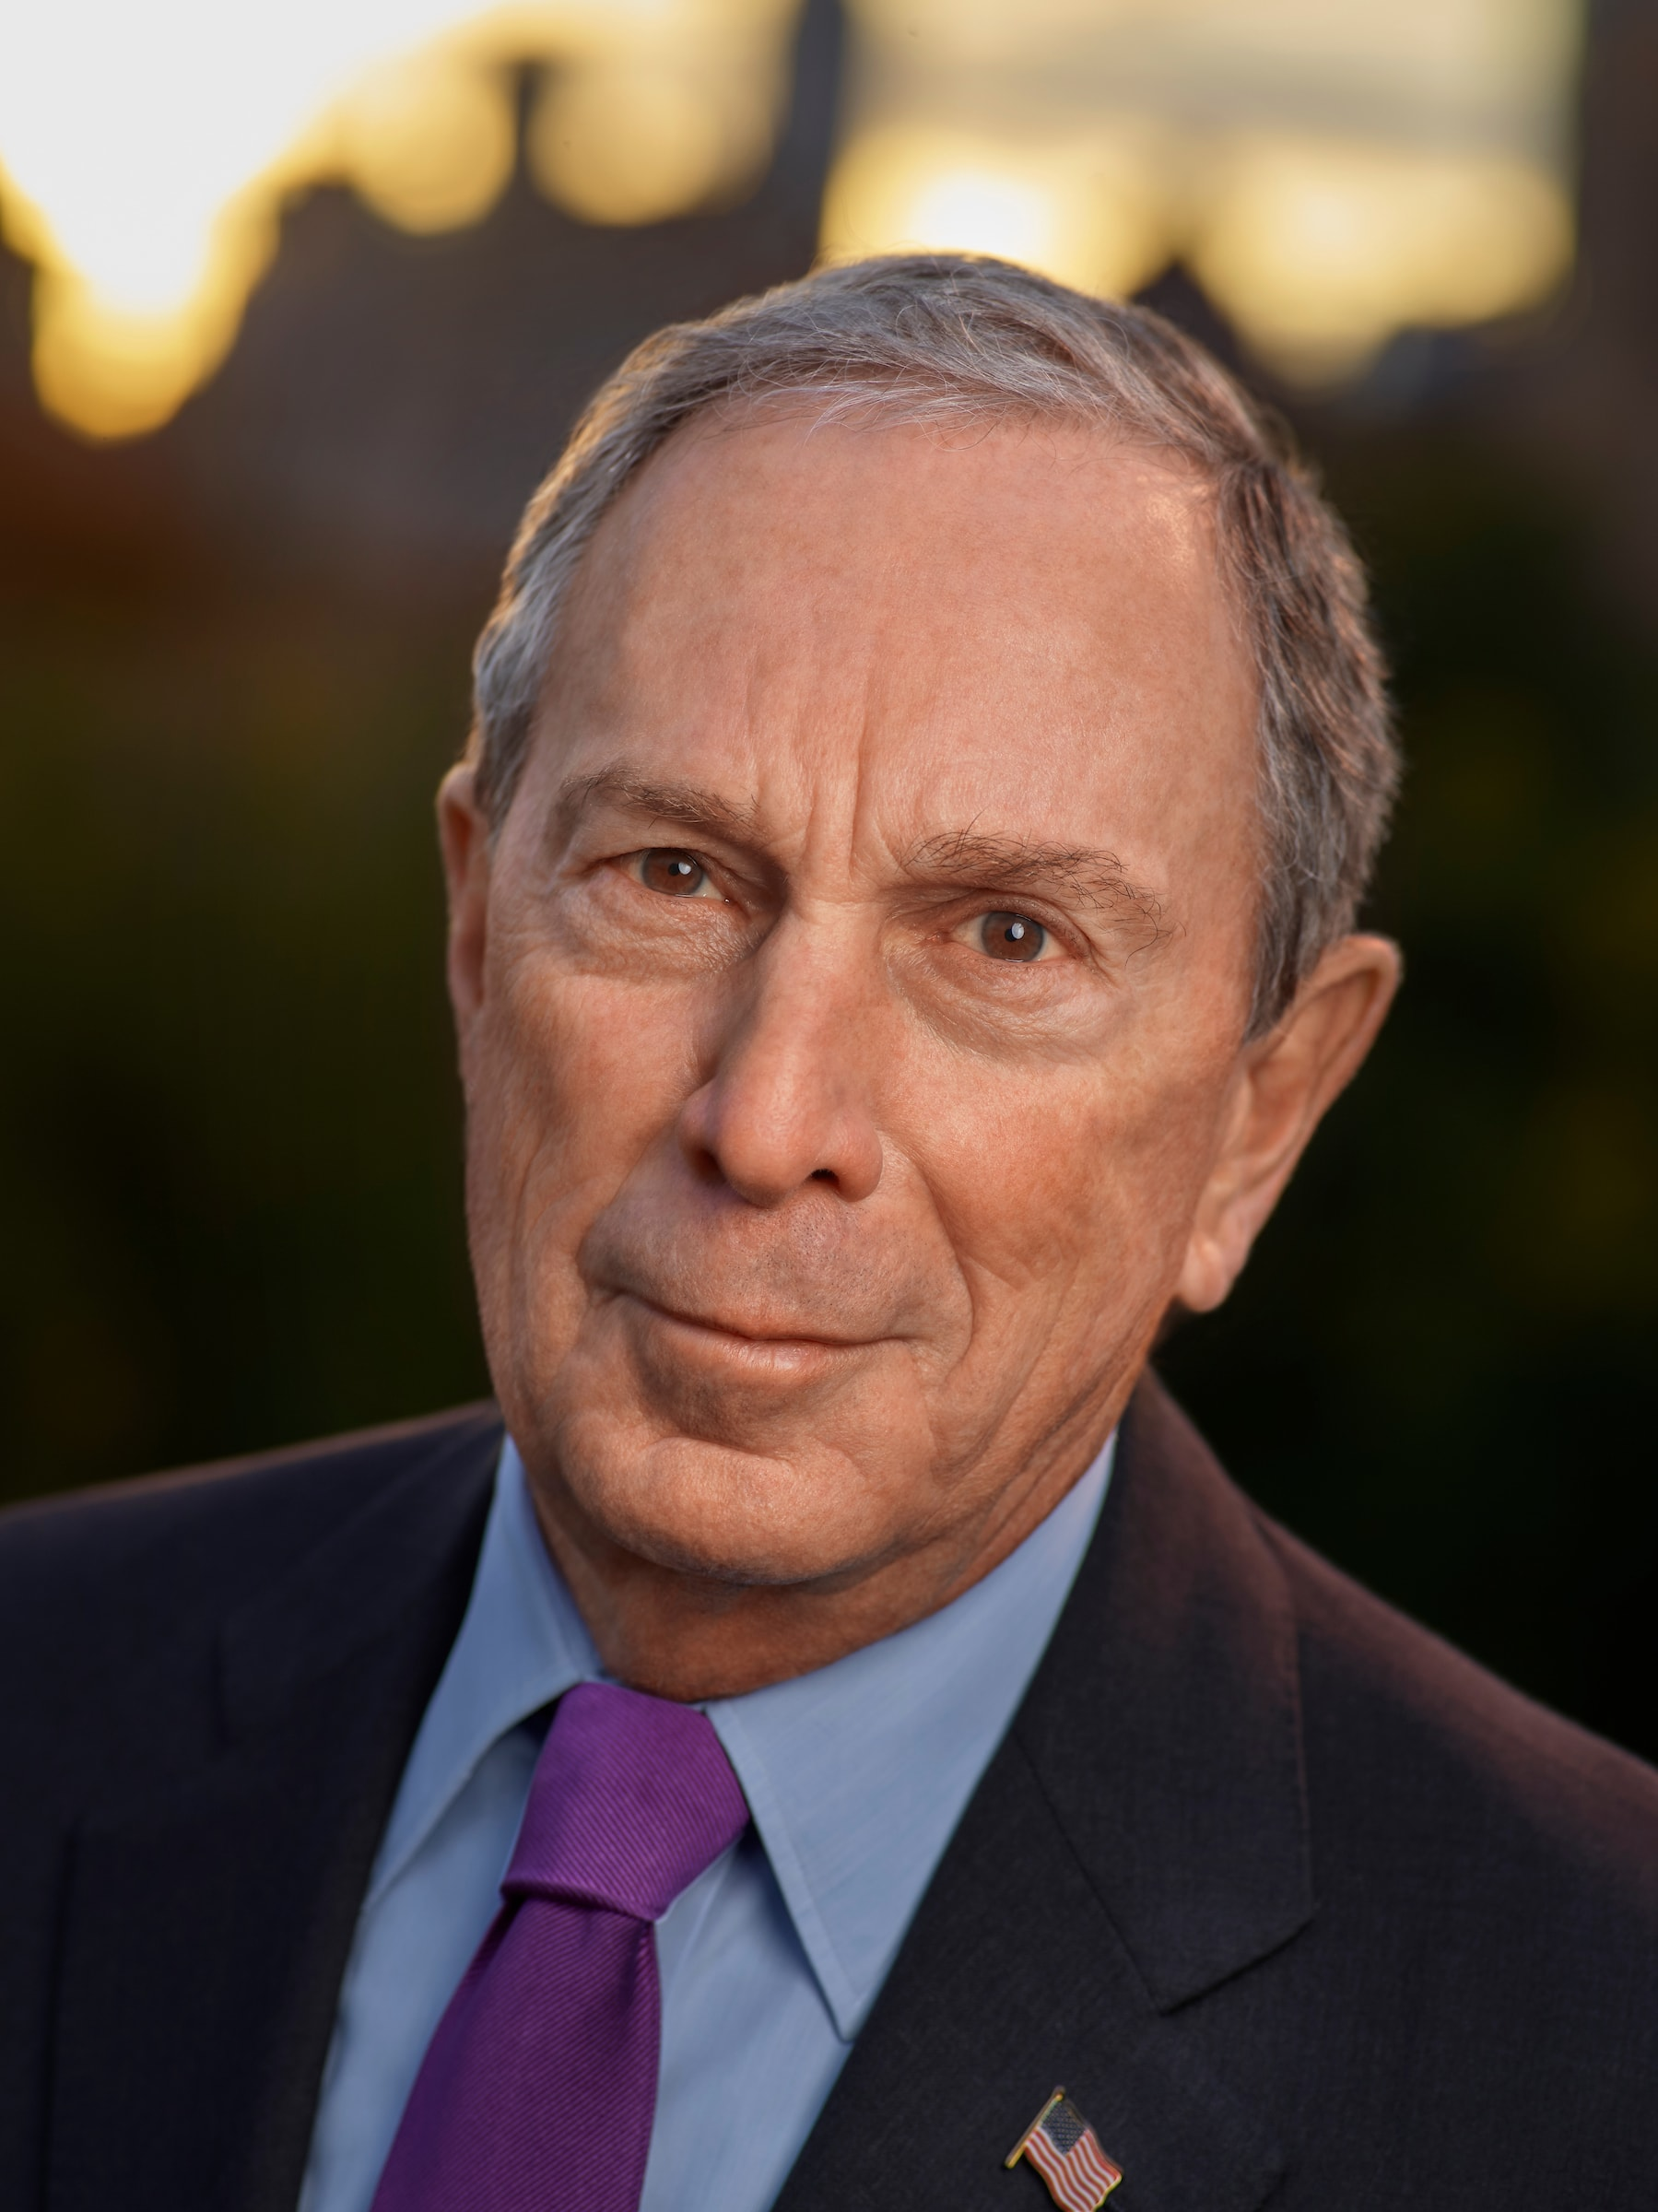 Michael R. Bloomberg, the entrepreneur, philanthropist, former New York City mayor, and chairman of the 9/11 Memorial & Museum, smiles for a portrait photo.